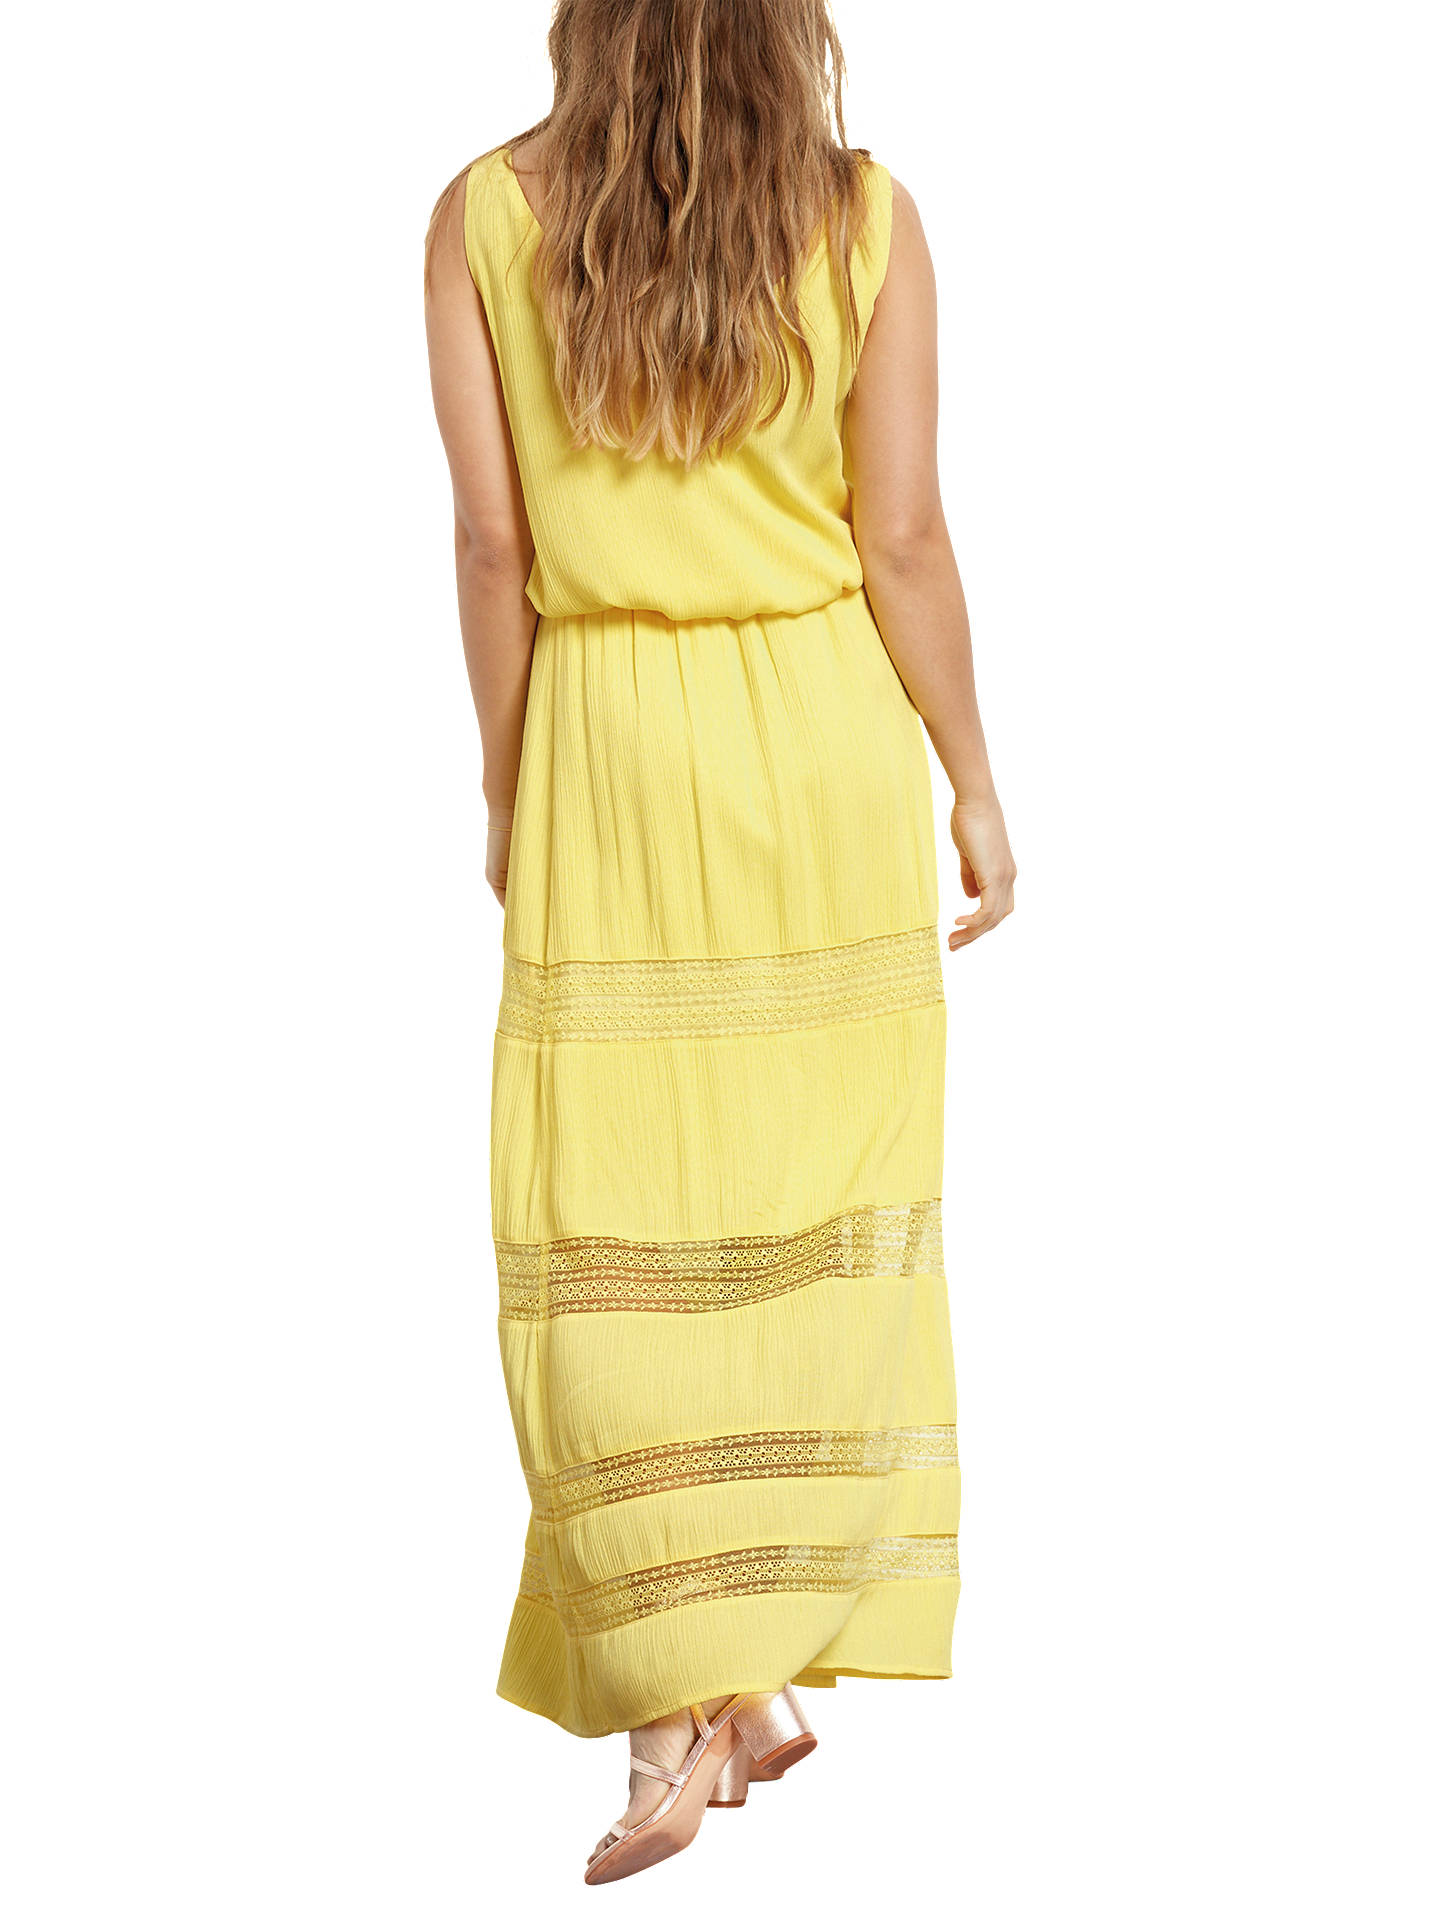 9a3c53df57 ... Buy hush Lace Insert Maxi Skirt, Goldfinch, 6 Online at johnlewis.com  ...